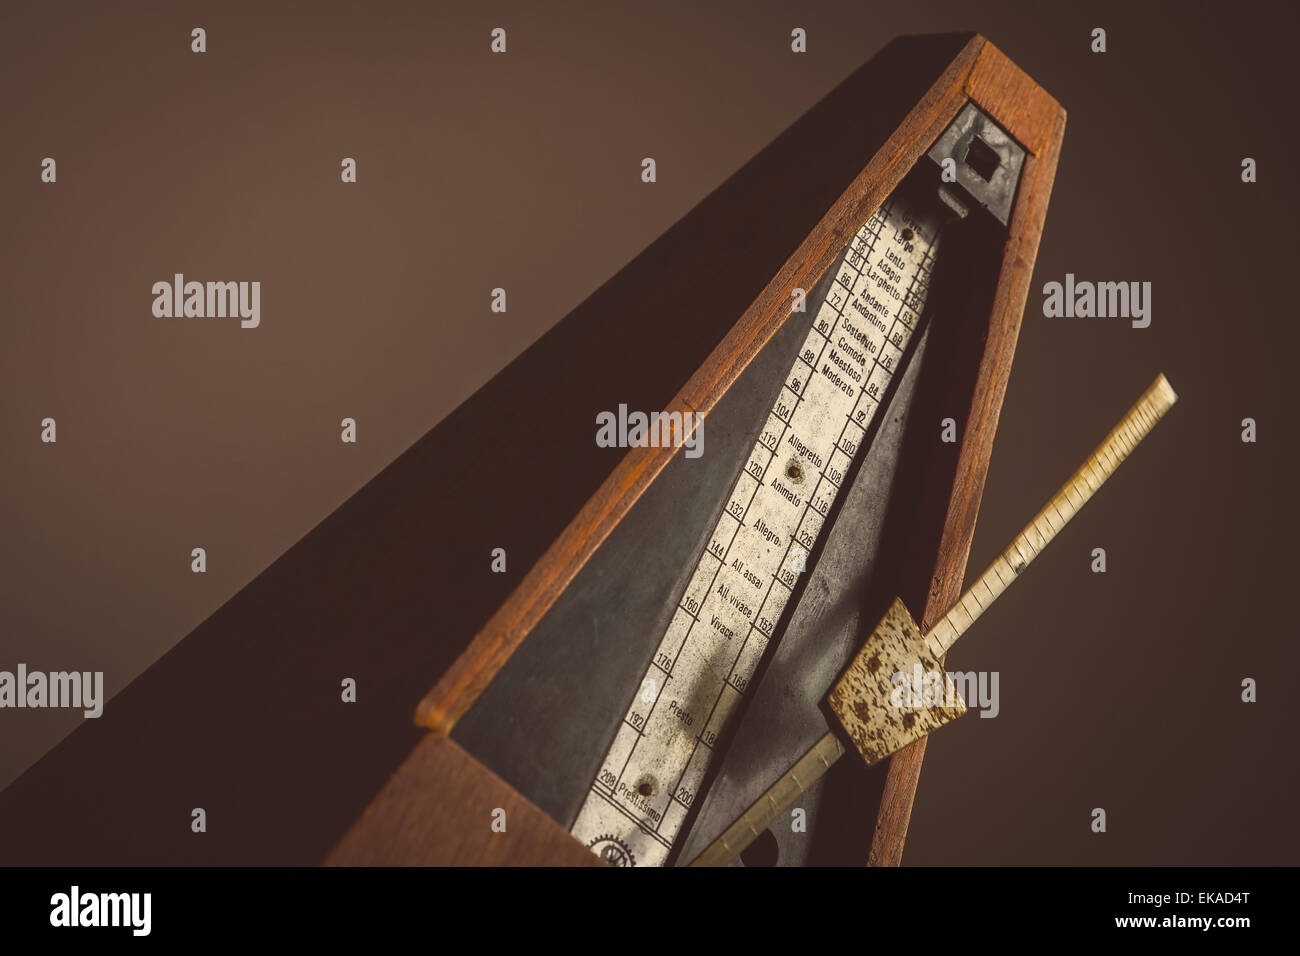 Color shot of a vintage metronome, on a black background. - Stock Image